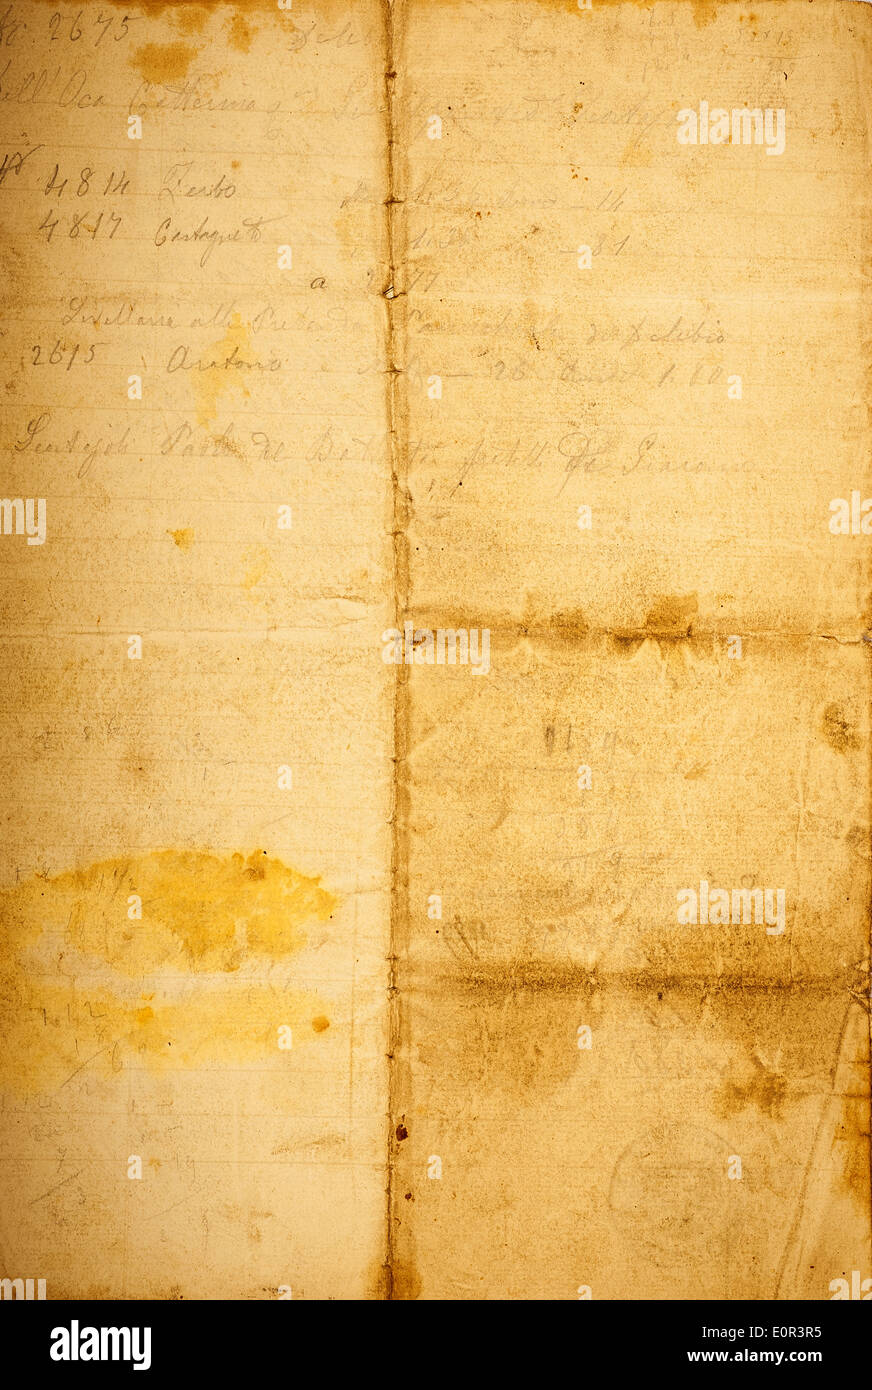 Dirty old parchment with spots and stripes Stock Photo